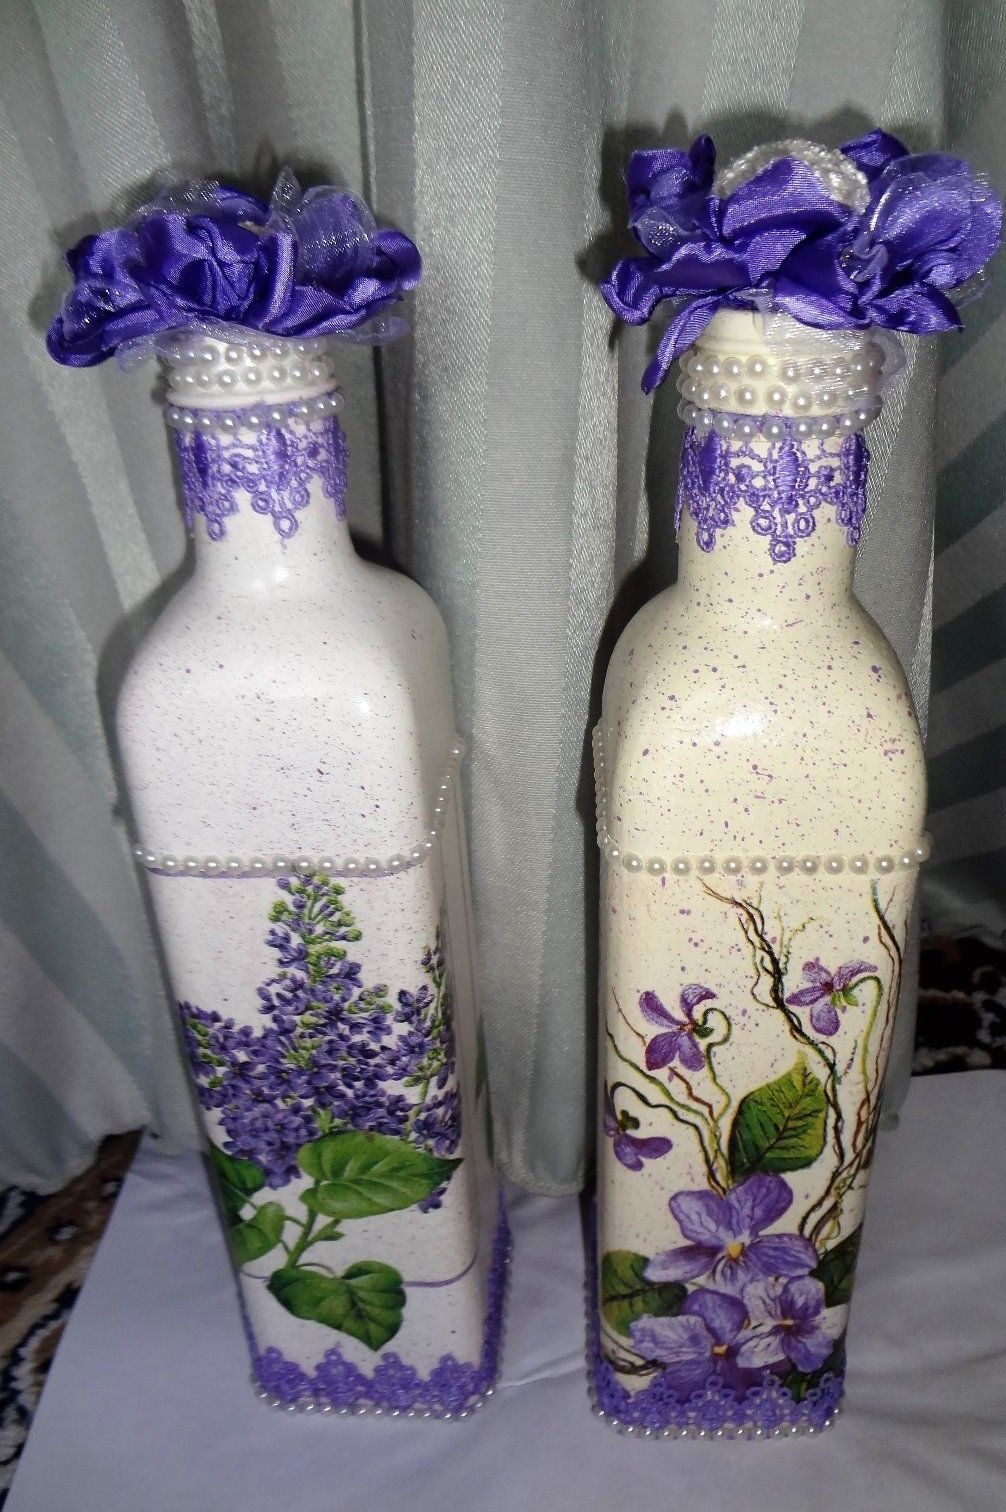 set-of-2-handcrafted-altered-glass-bottles-painted-_57